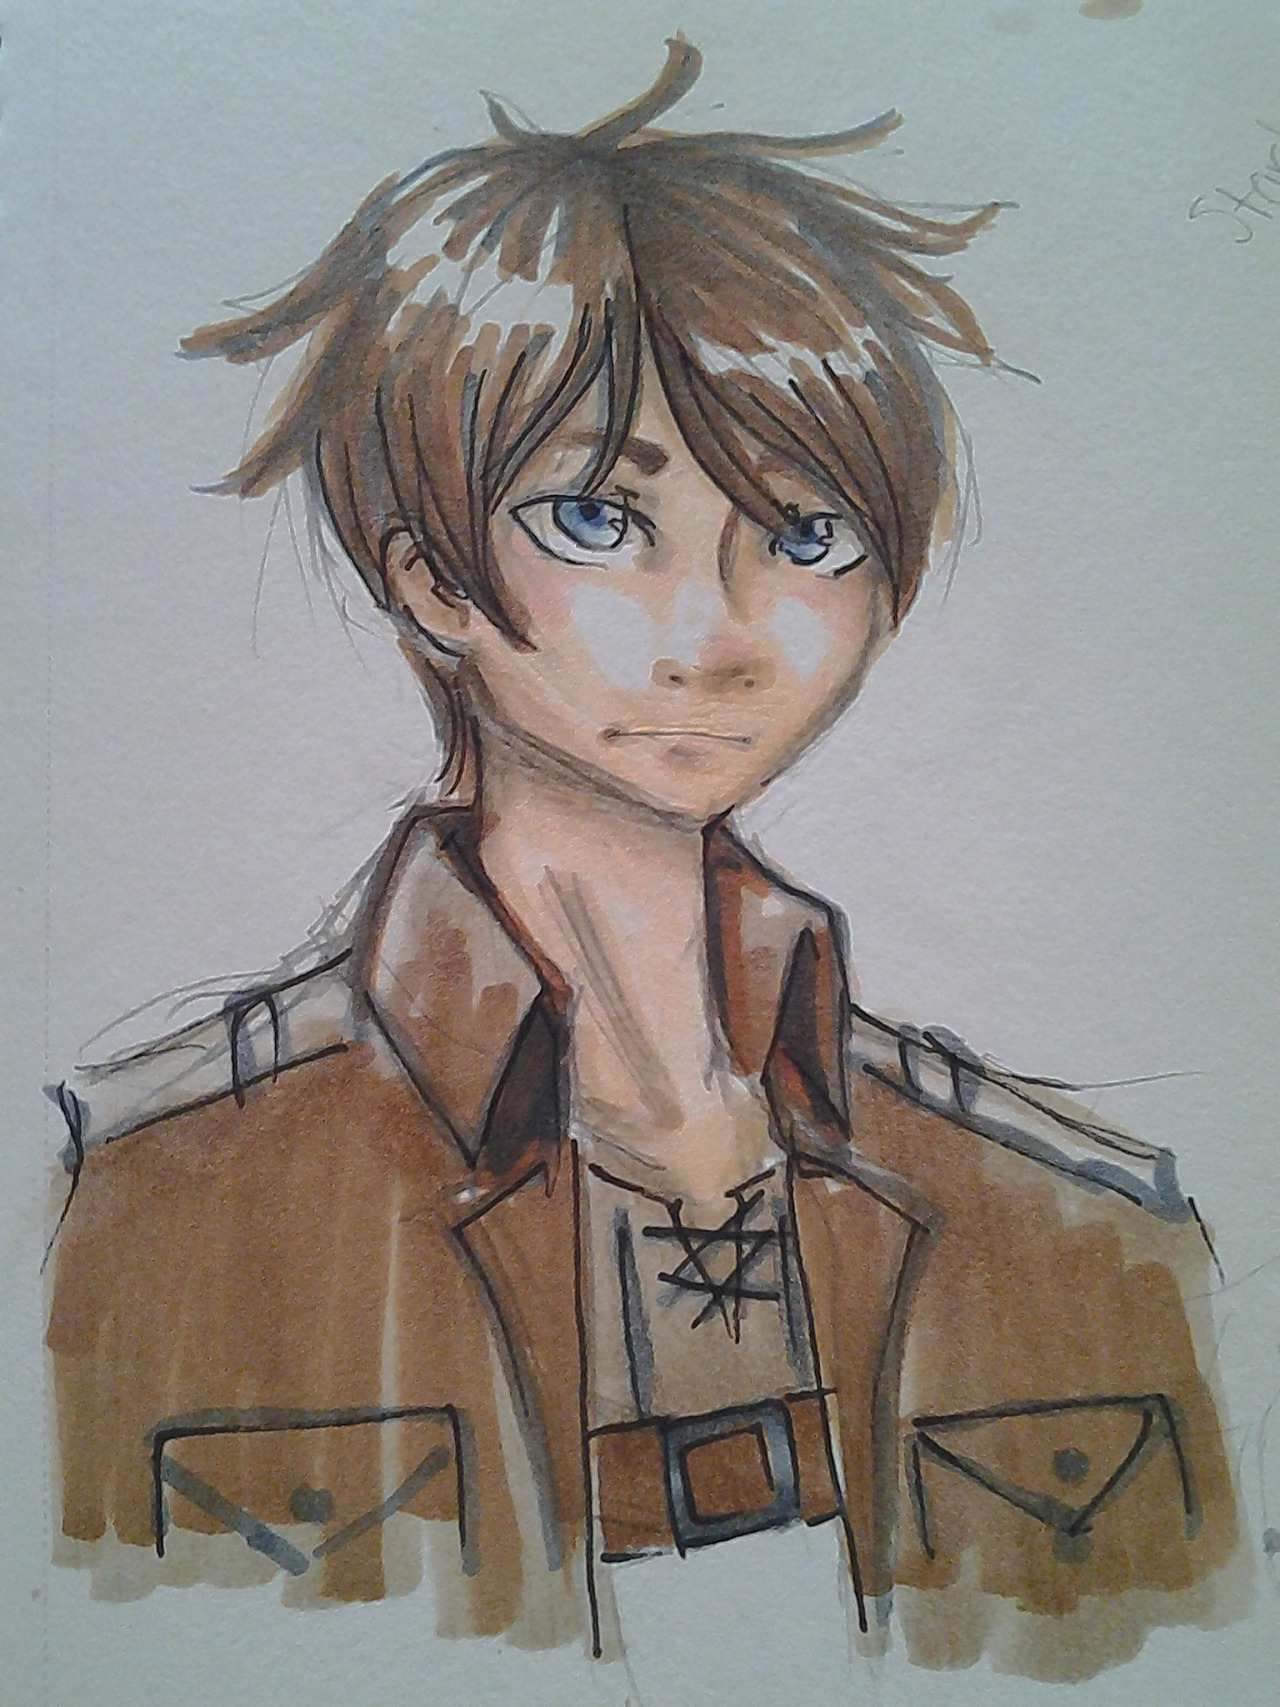 Messin around w/ copicssorry about the hair i ran out of time, so i couldnt finish coloring